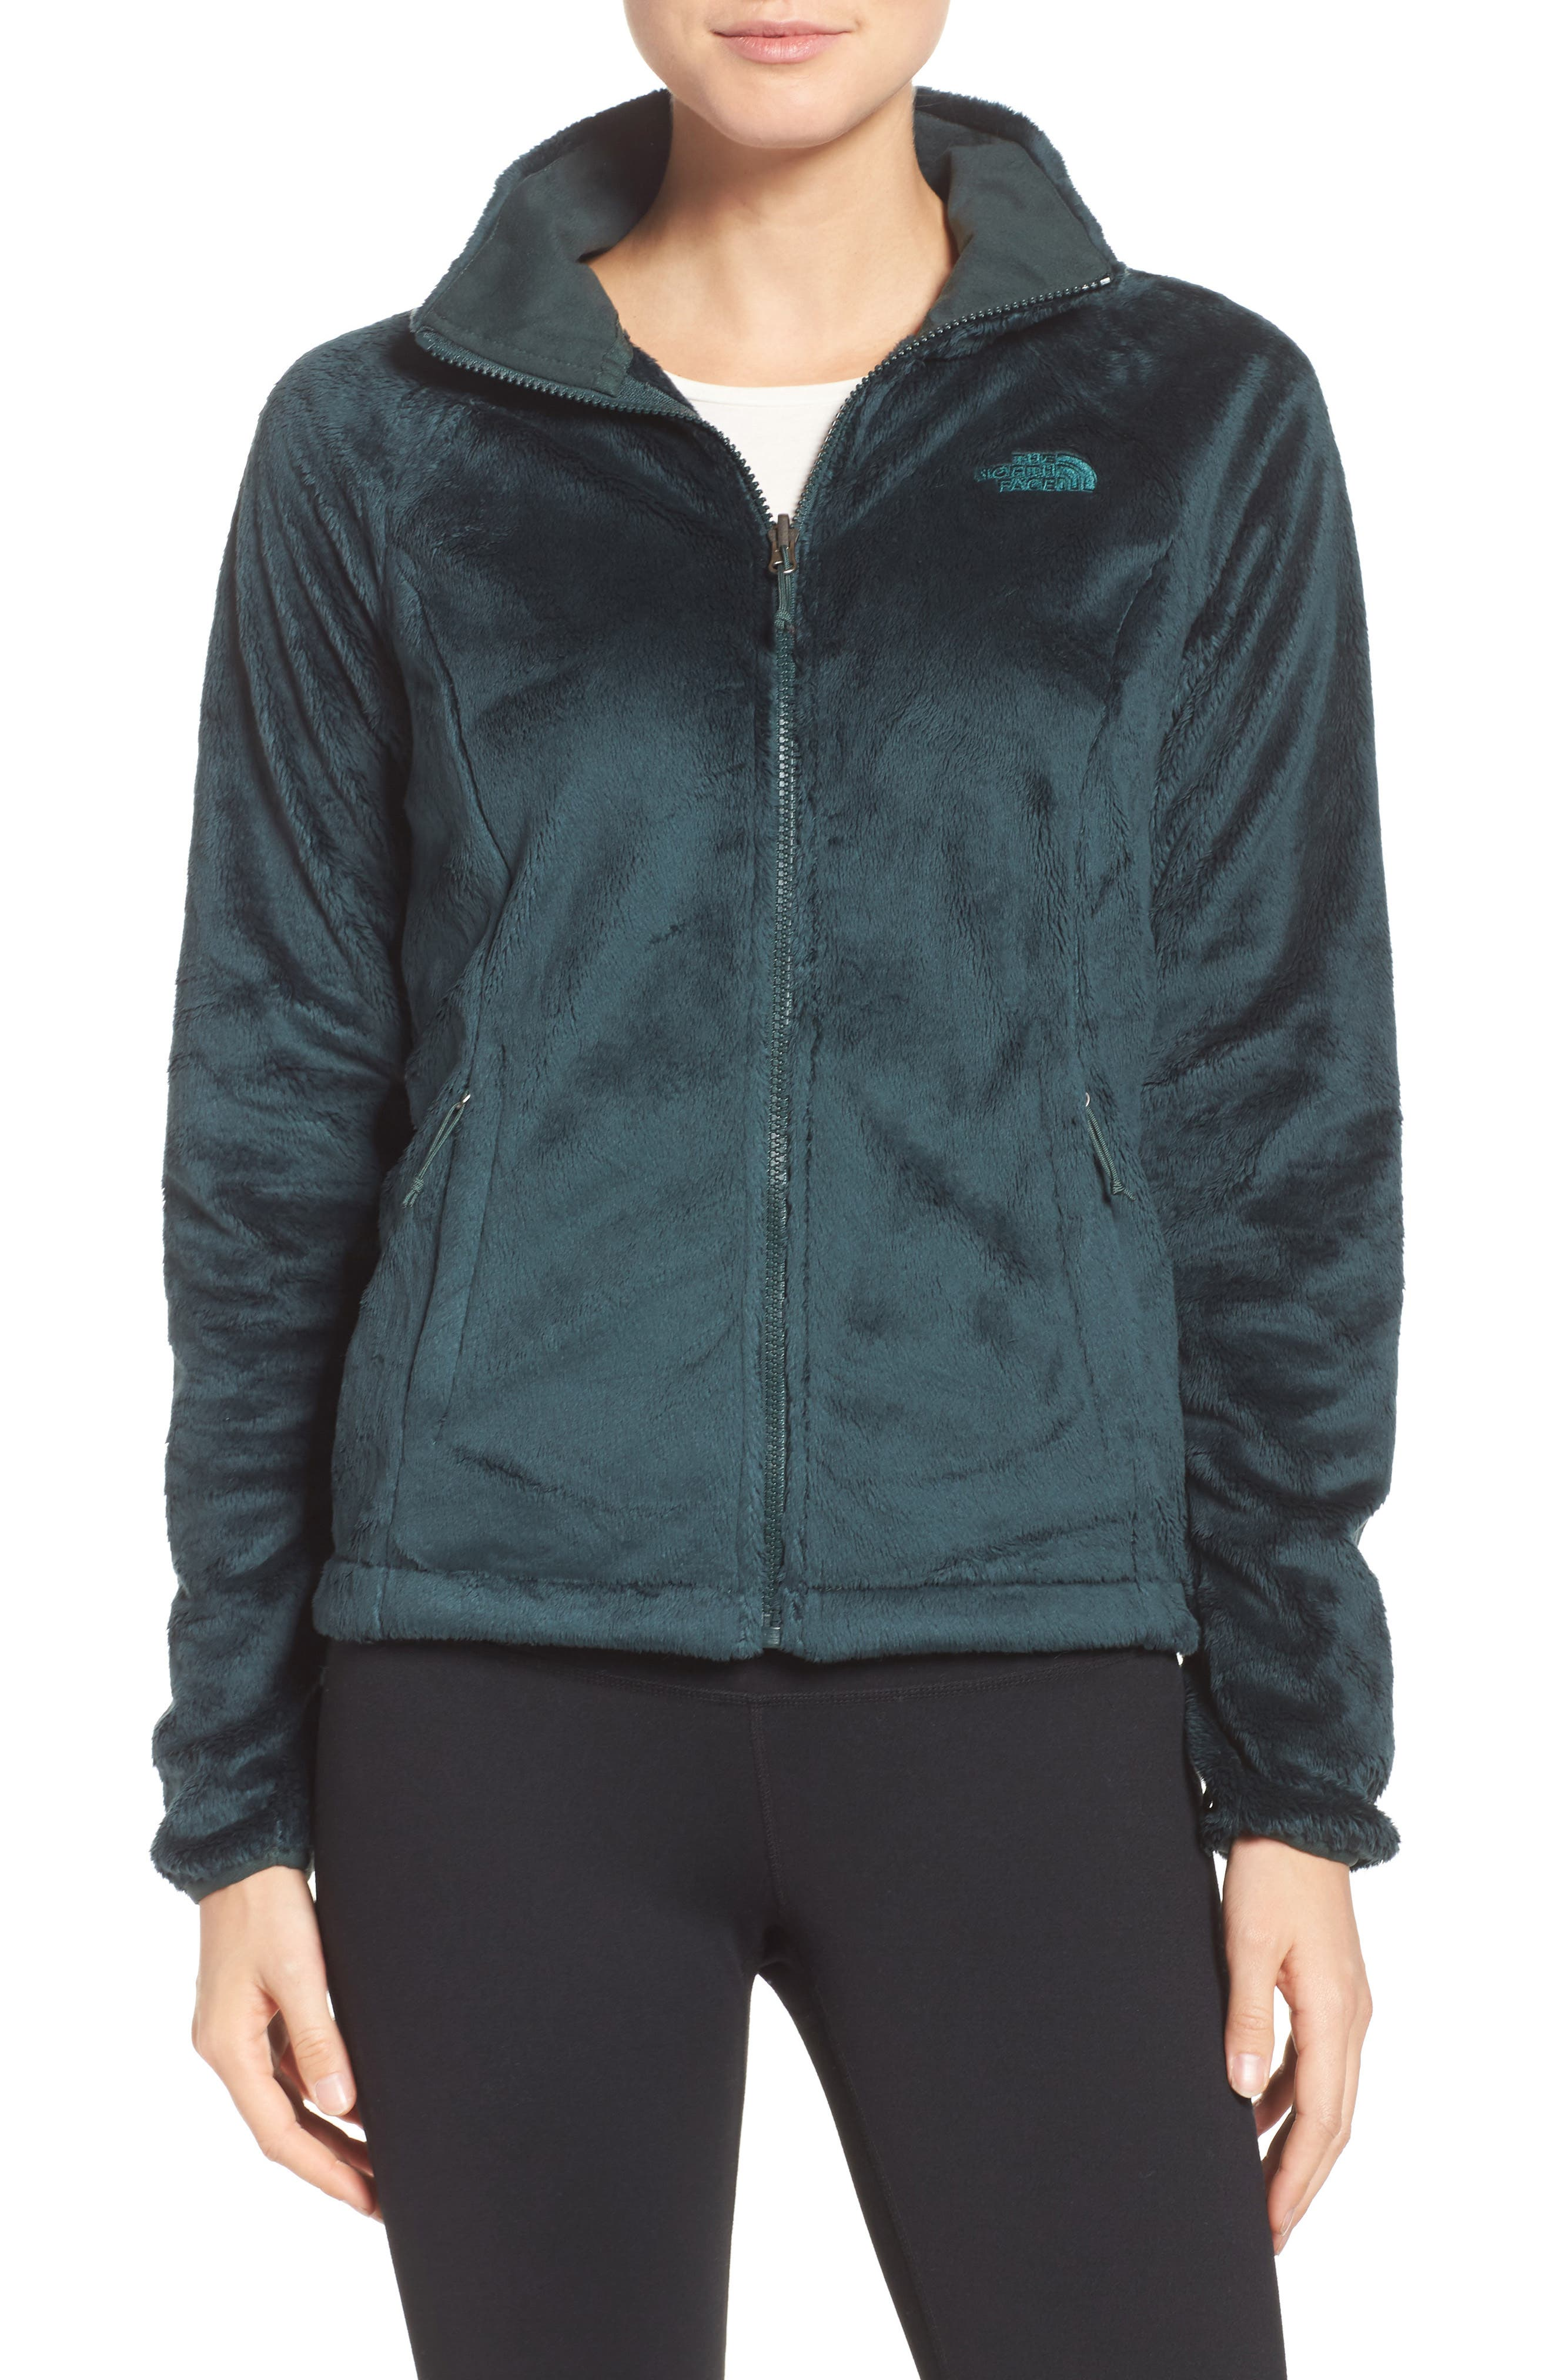 Boundary Triclimate<sup>®</sup> 3-in-1 Jacket,                             Alternate thumbnail 9, color,